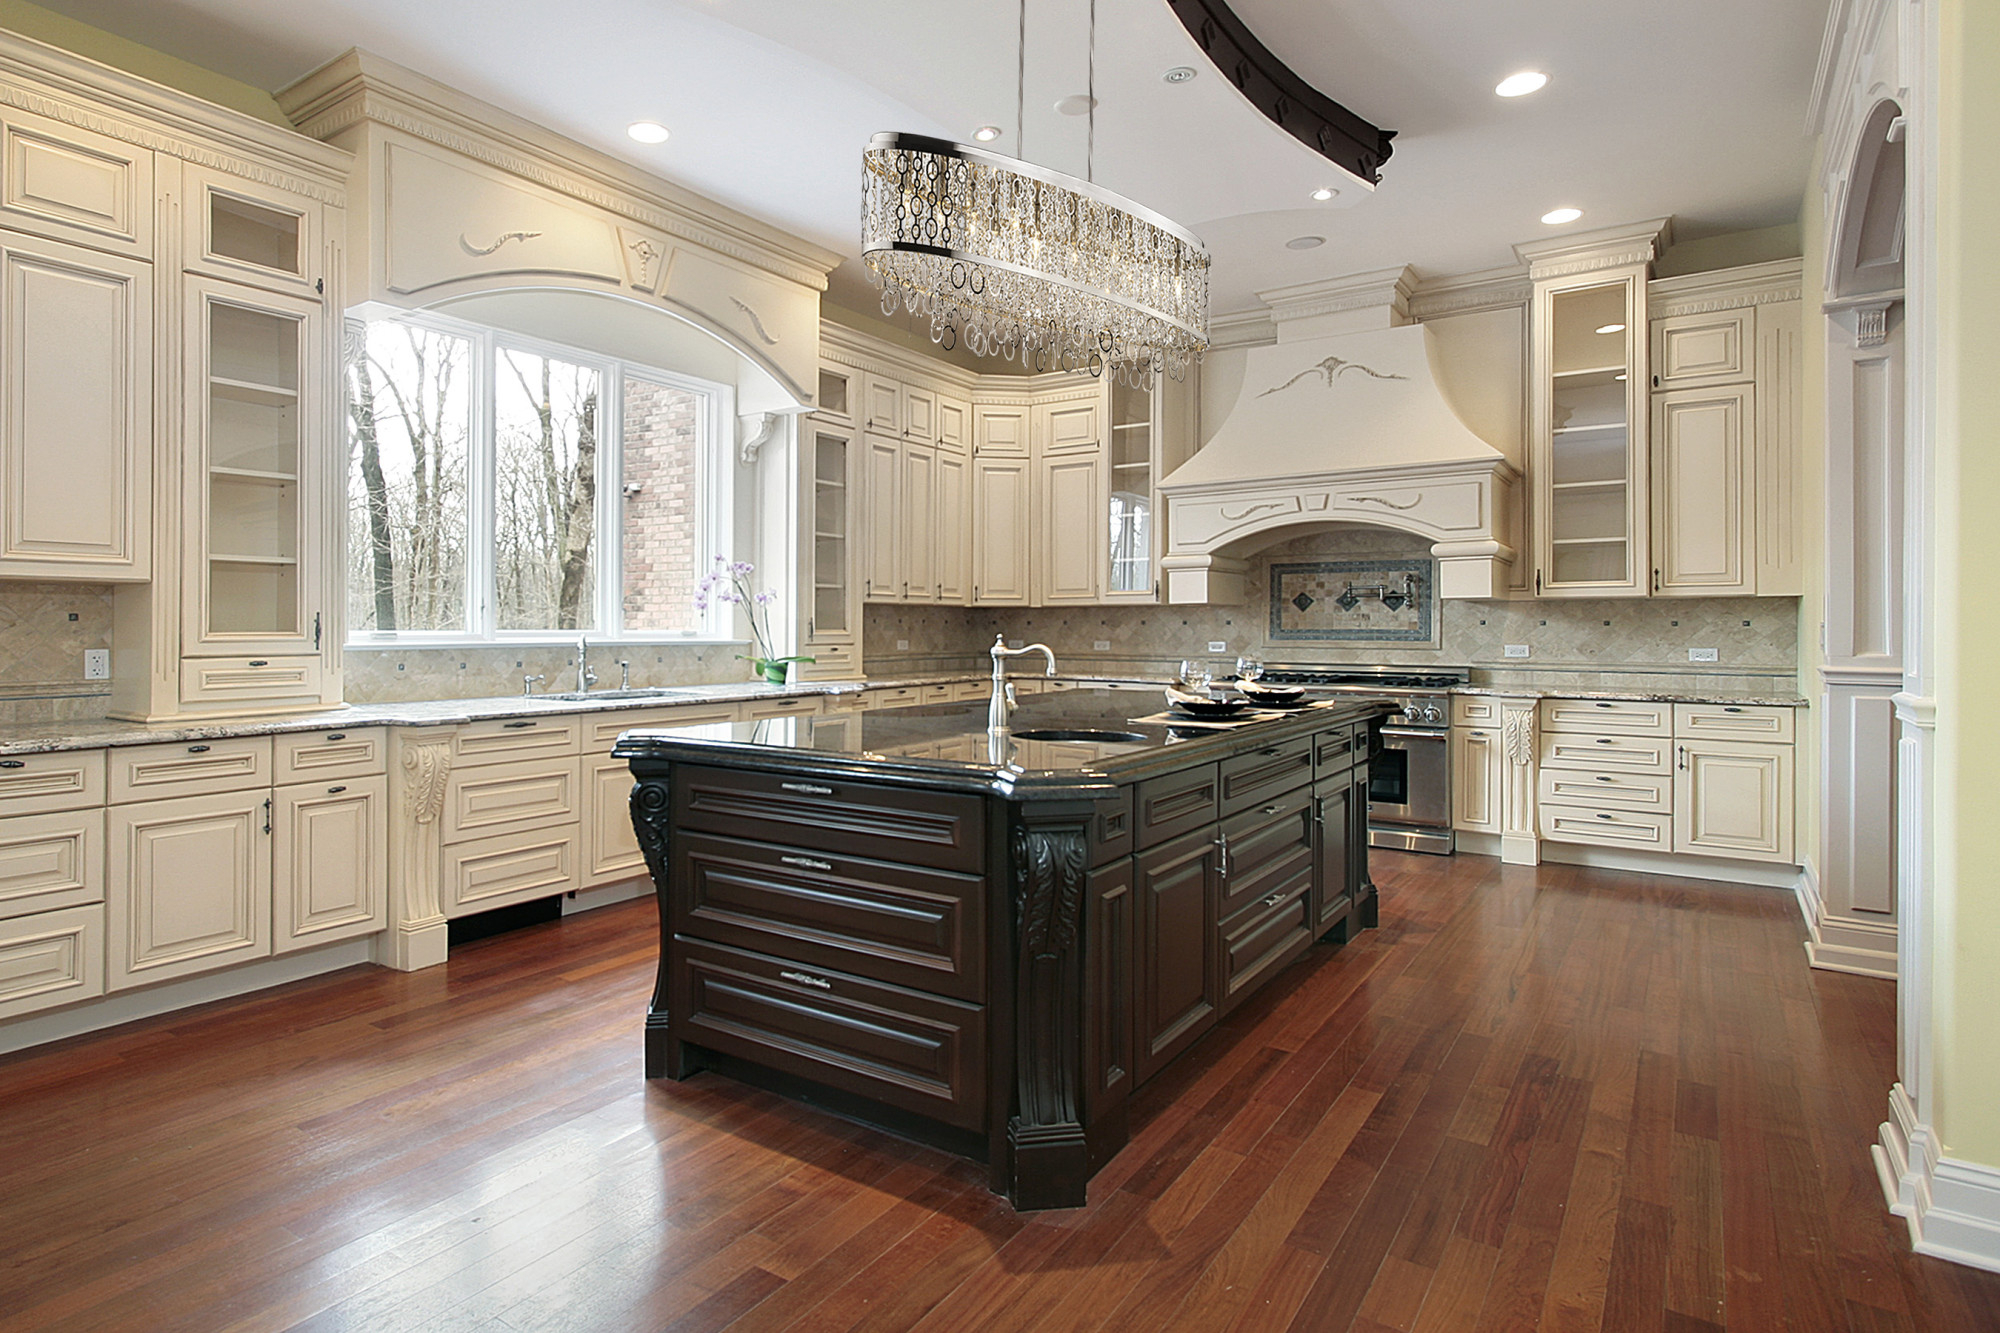 Antique White Kitchen Cabinets You'll Love in 9   VisualHunt